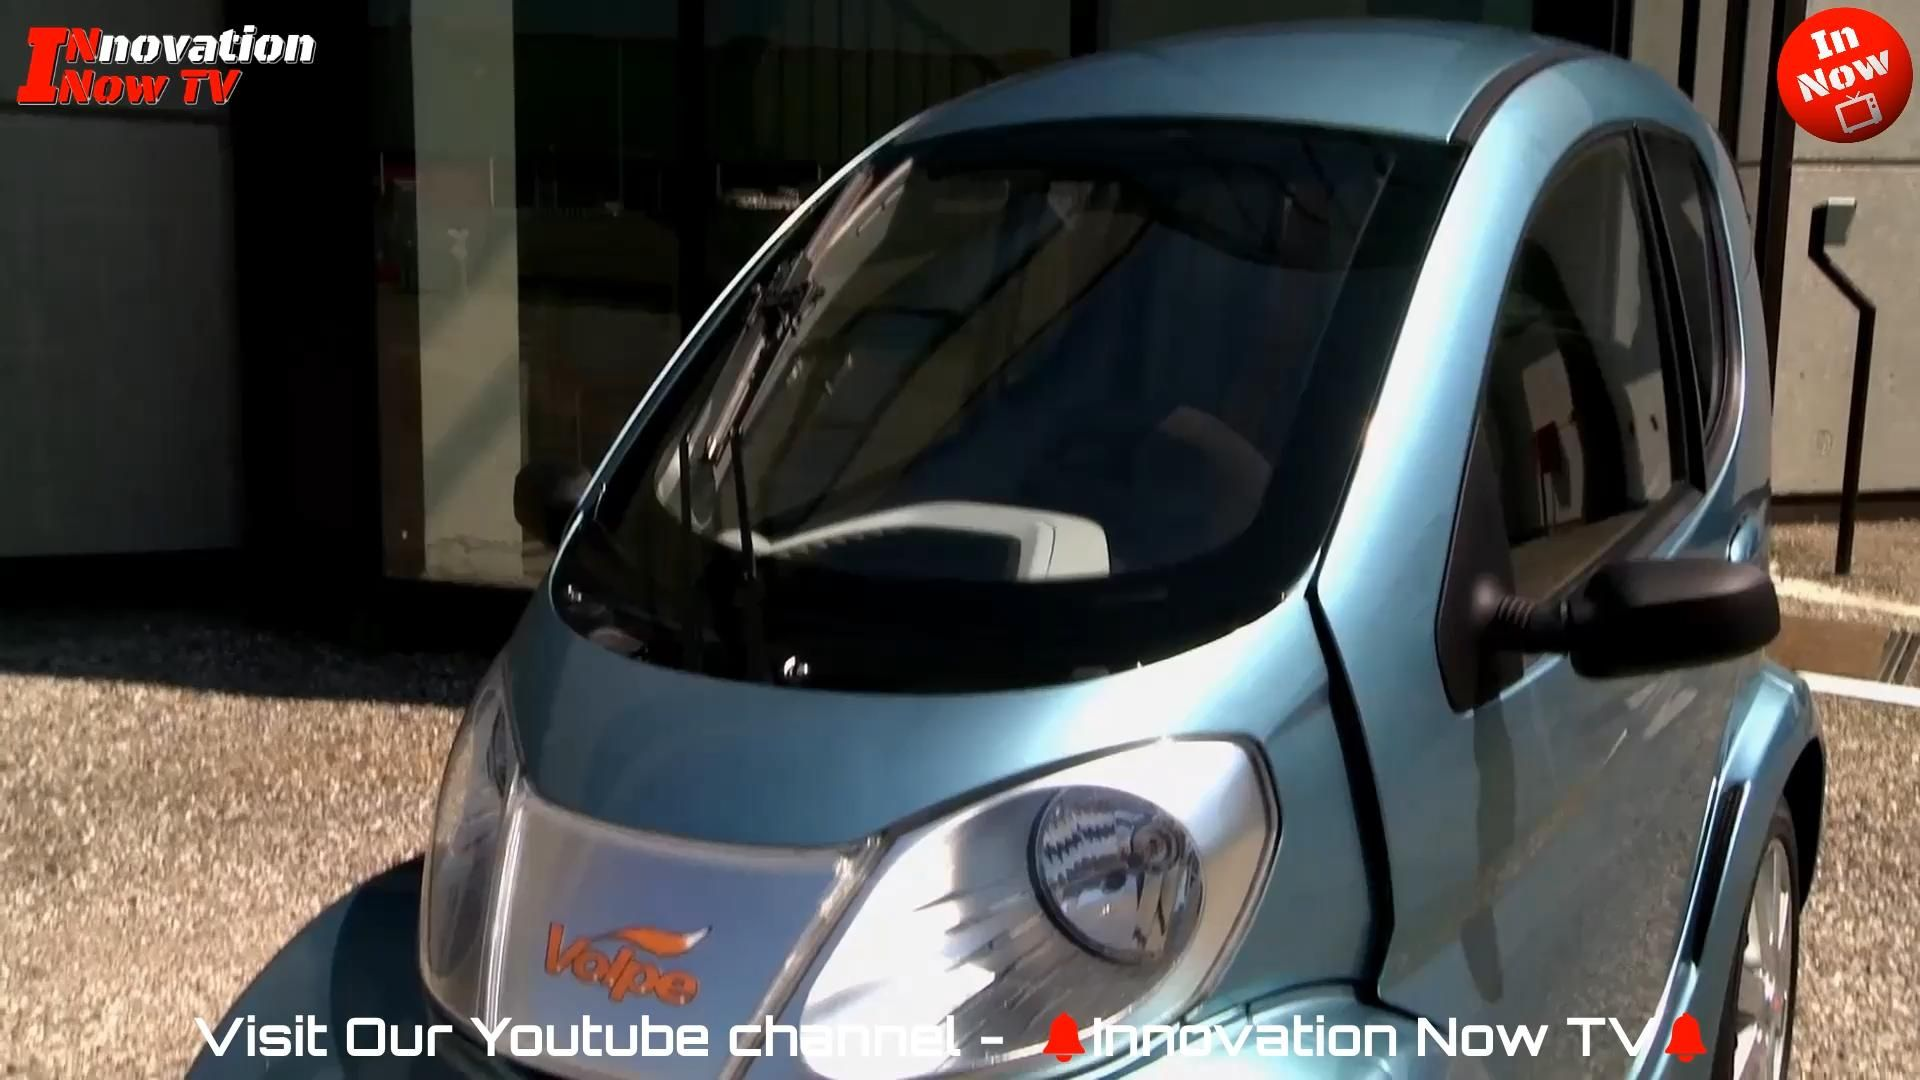 Youtube Channel 🔔Innovation Now TV🔔  Volpe is the acronym that stands for Light, Emission Free Vehicles, made by Zagato in Italy.   Credit:  Zagato Volpe          topspeed.com  #zagato #microcars #tinycars #micromobiles #mobility #electricvehicle #electriccars #amazingvehicles #personaltransportation #personaltransportvehicles #personaltransportationdevice #gadgets #inventions #machines #amazing #cool #extreme #technology #innovation #vehicle